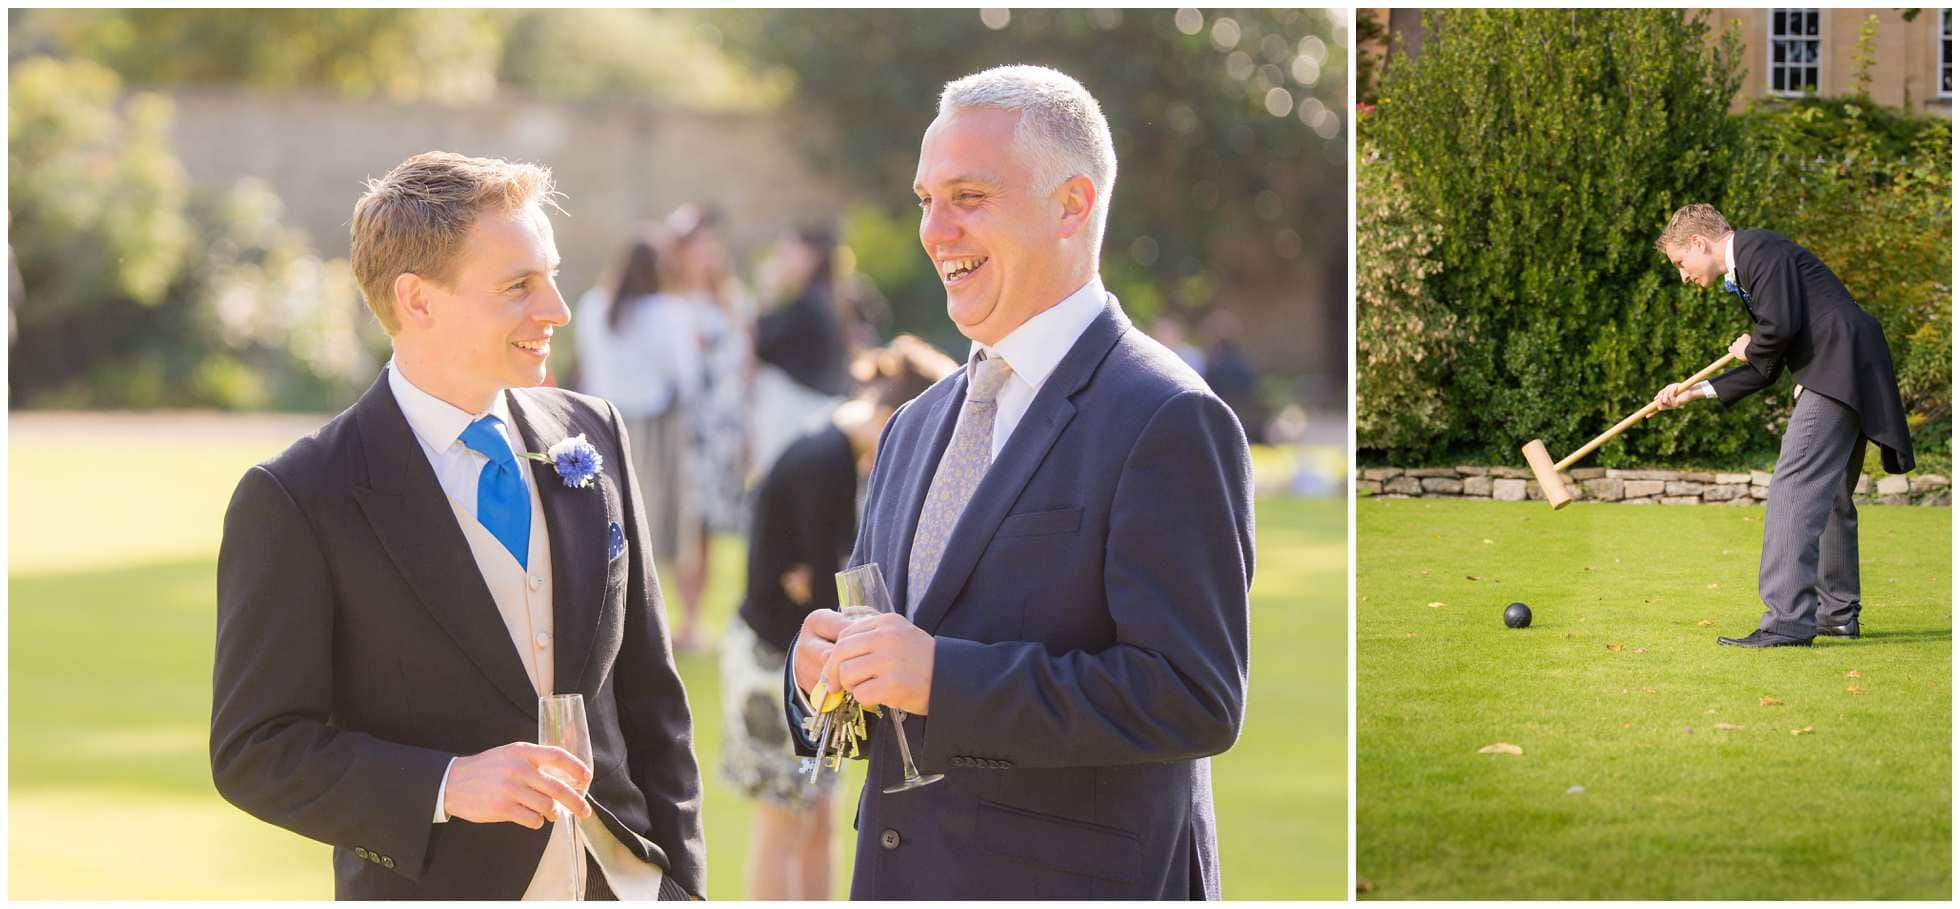 The groom playing croquet and talking to wedding organiser